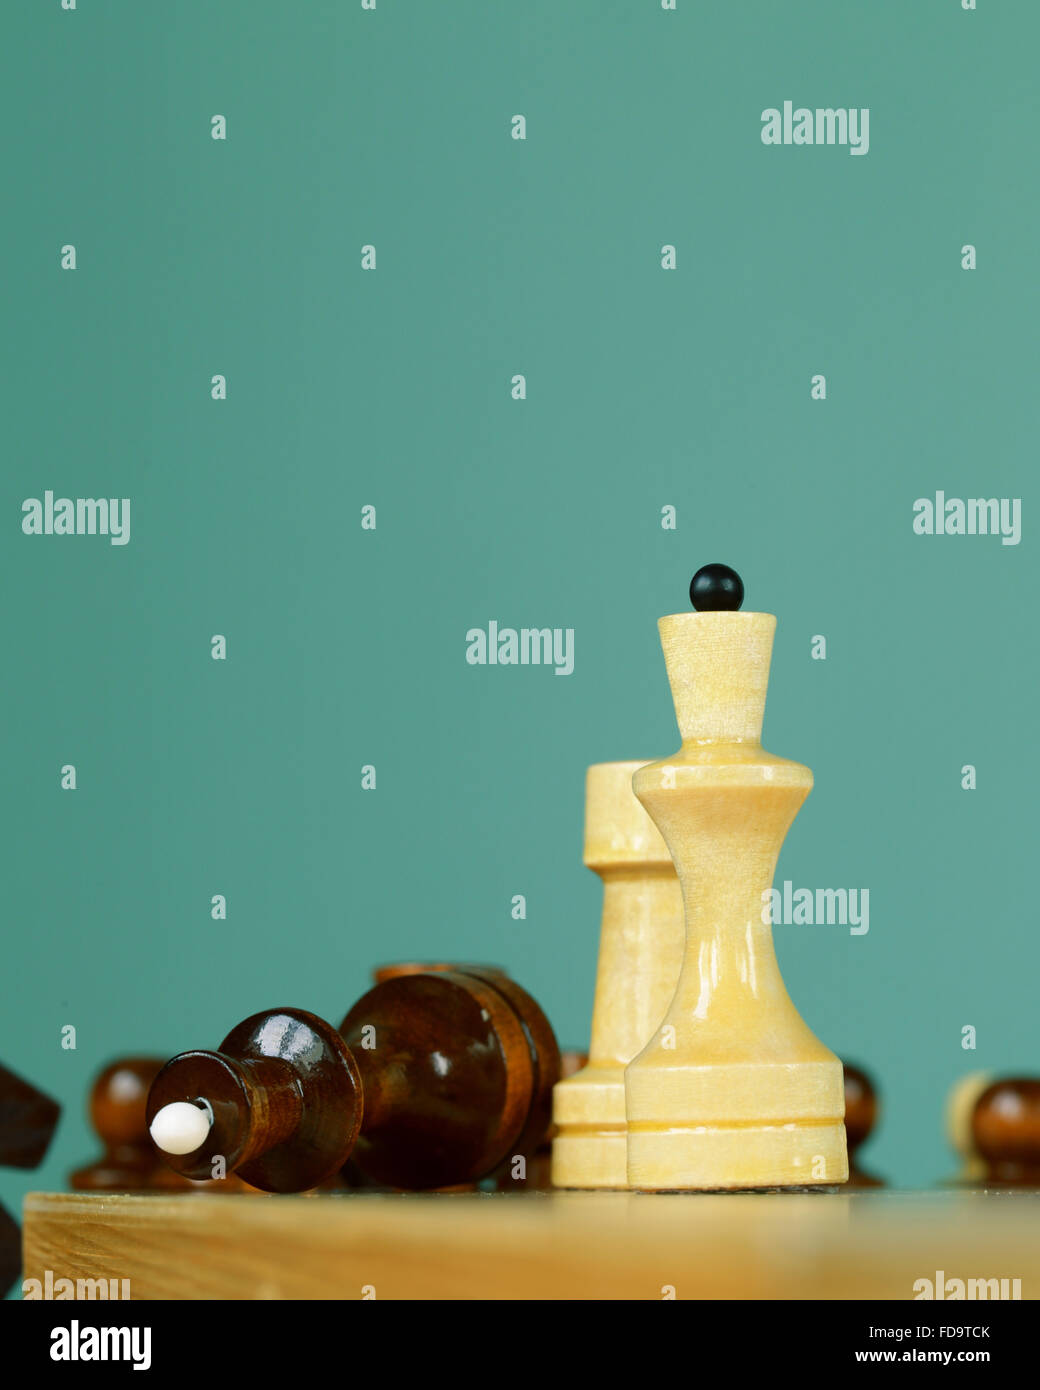 chess position - pawn standing in a position of checkmate - Stock Image